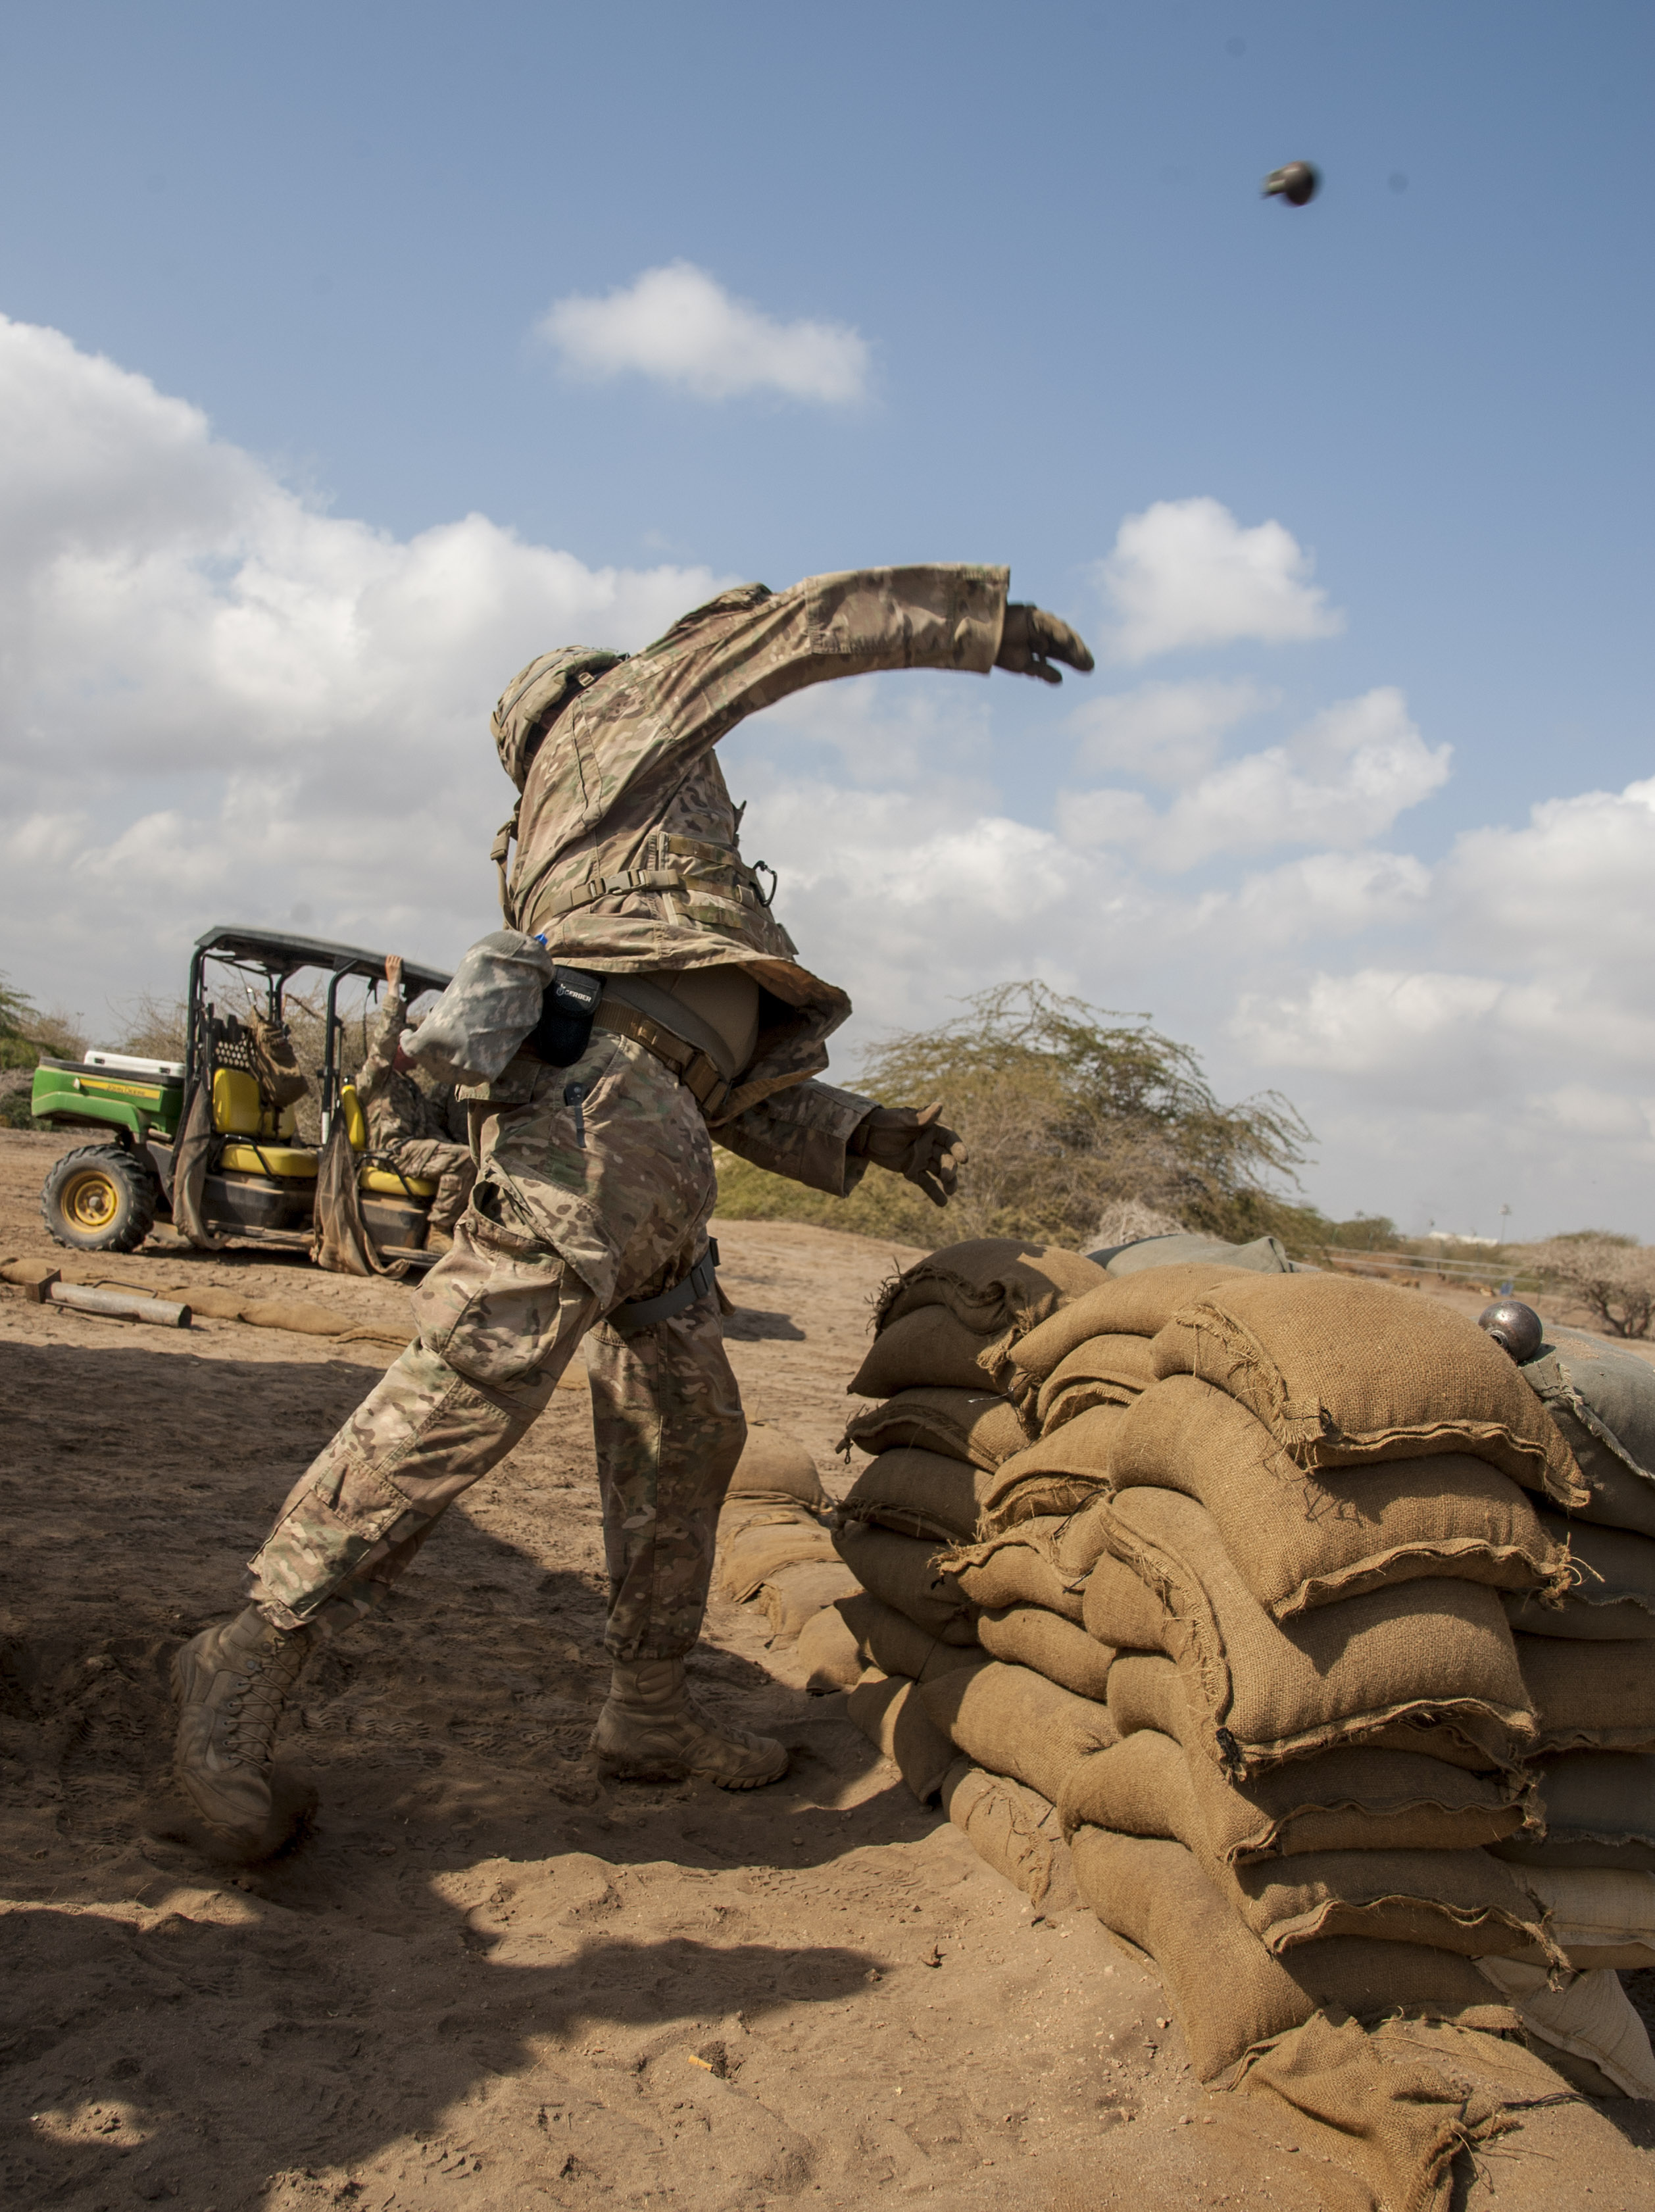 A U.S. Army Soldier assigned to Combined Joint Task Force - Horn of Africa throws a training grenade in preparation for an Expert Infantryman Badge (EIB) evaluation at Camp Lemonnier, Djibouti, Jan. 23, 2018. The EIB is a coveted special skills badge that requires infantry Soldiers to pass a five-day evaluation that consists of an Army Physical Fitness Test, day and night land navigation, a 12-mile forced march, and 30 individual tasks covering weapons, medical, and security patrol skills. In an April 2016 EIB iteration at Camp Lemonnier, only 15 percent of candidates earned the badge. (U.S. Air Force photo by Staff Sgt. Timothy Moore)